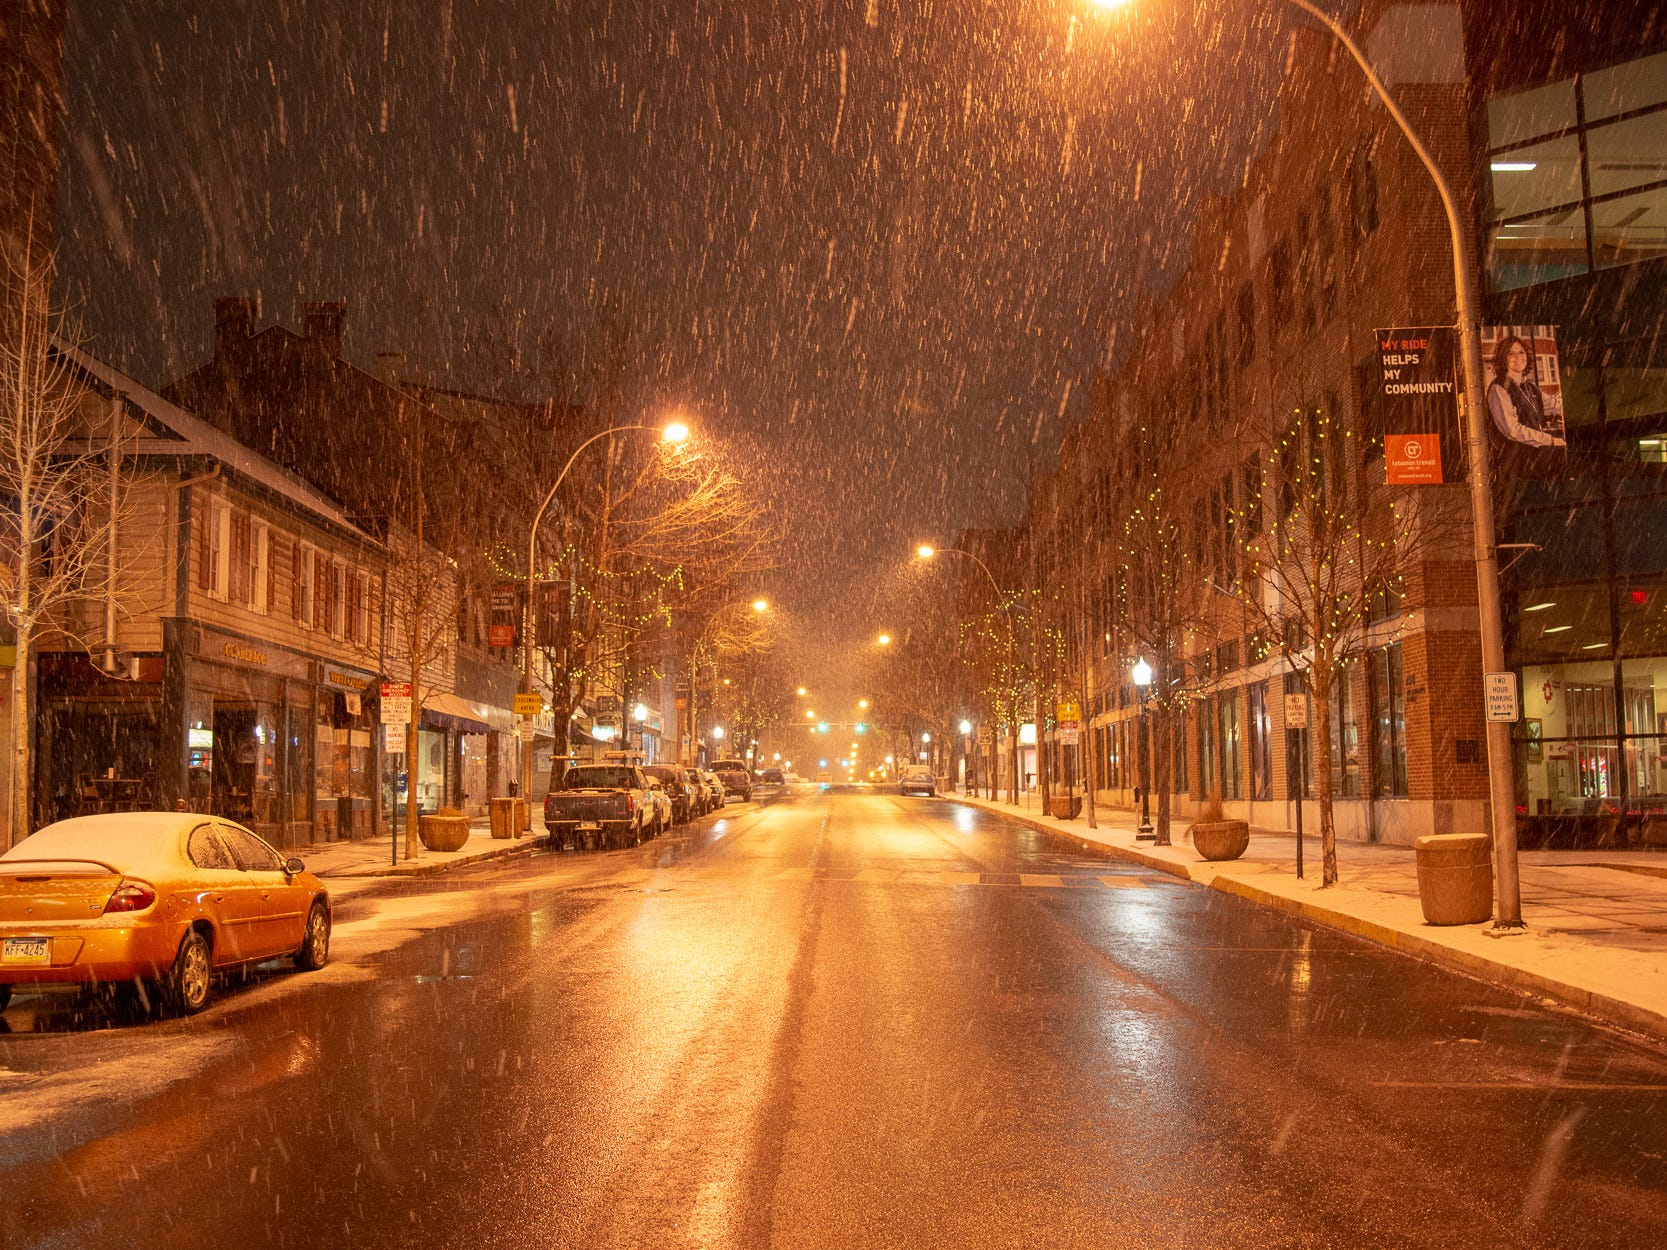 City lights and snow in Lebanon City Thursday evening, Jan. 17. This snow is a prologue of a bigger storm to come over the weekend followed by frigid temperatures.